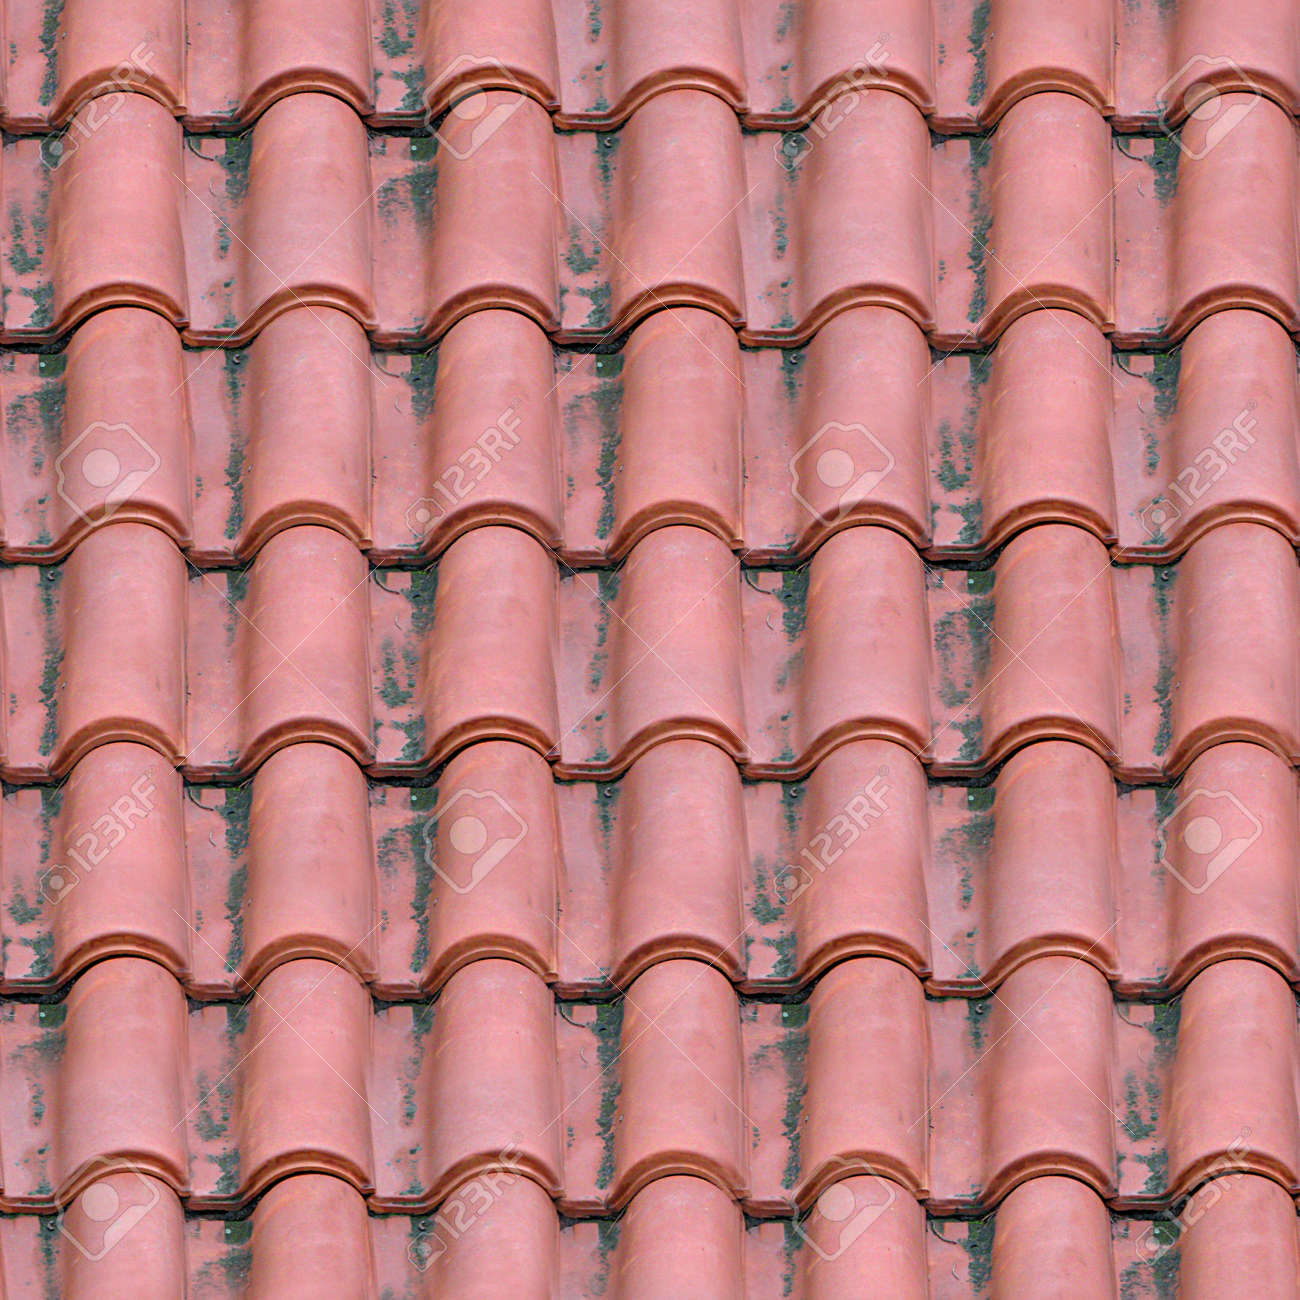 Spanish tile roofing seamless texture tile stock photo picture spanish tile roofing seamless texture tile stock photo 13102646 dailygadgetfo Images